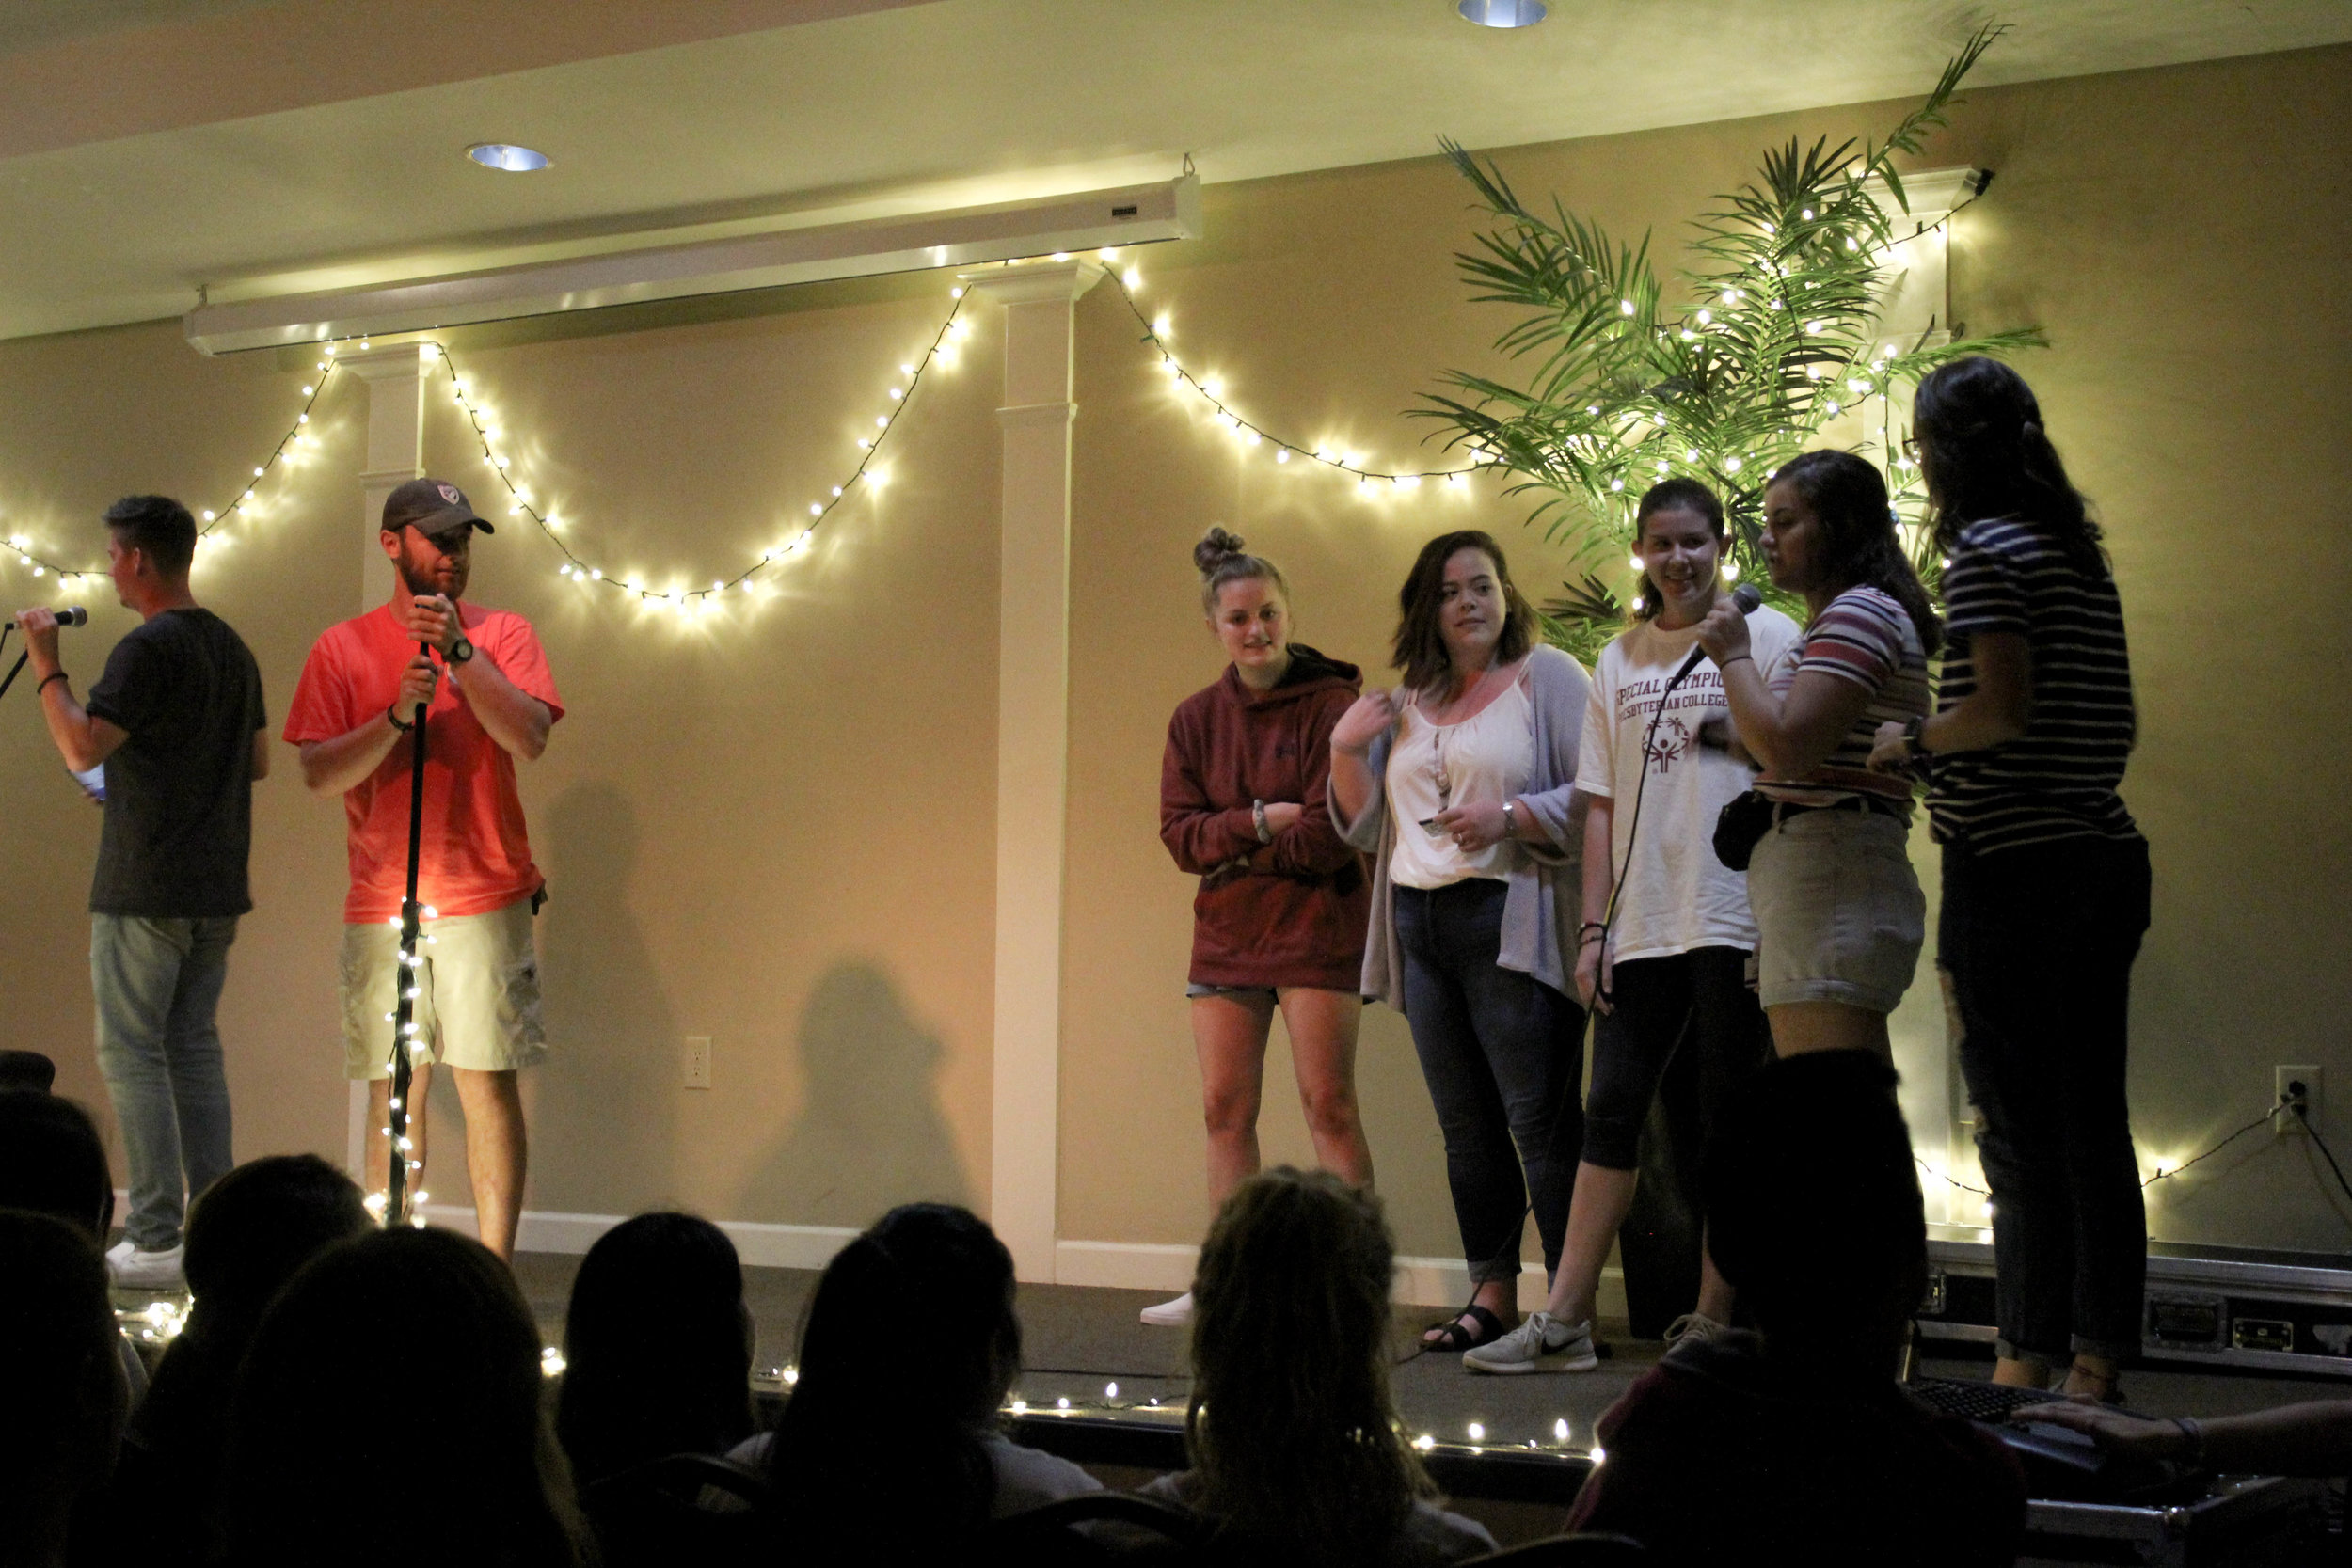 A contest was put on during the coffeehouse. The first five students to follow NGU student activities on instagram won a gift card.